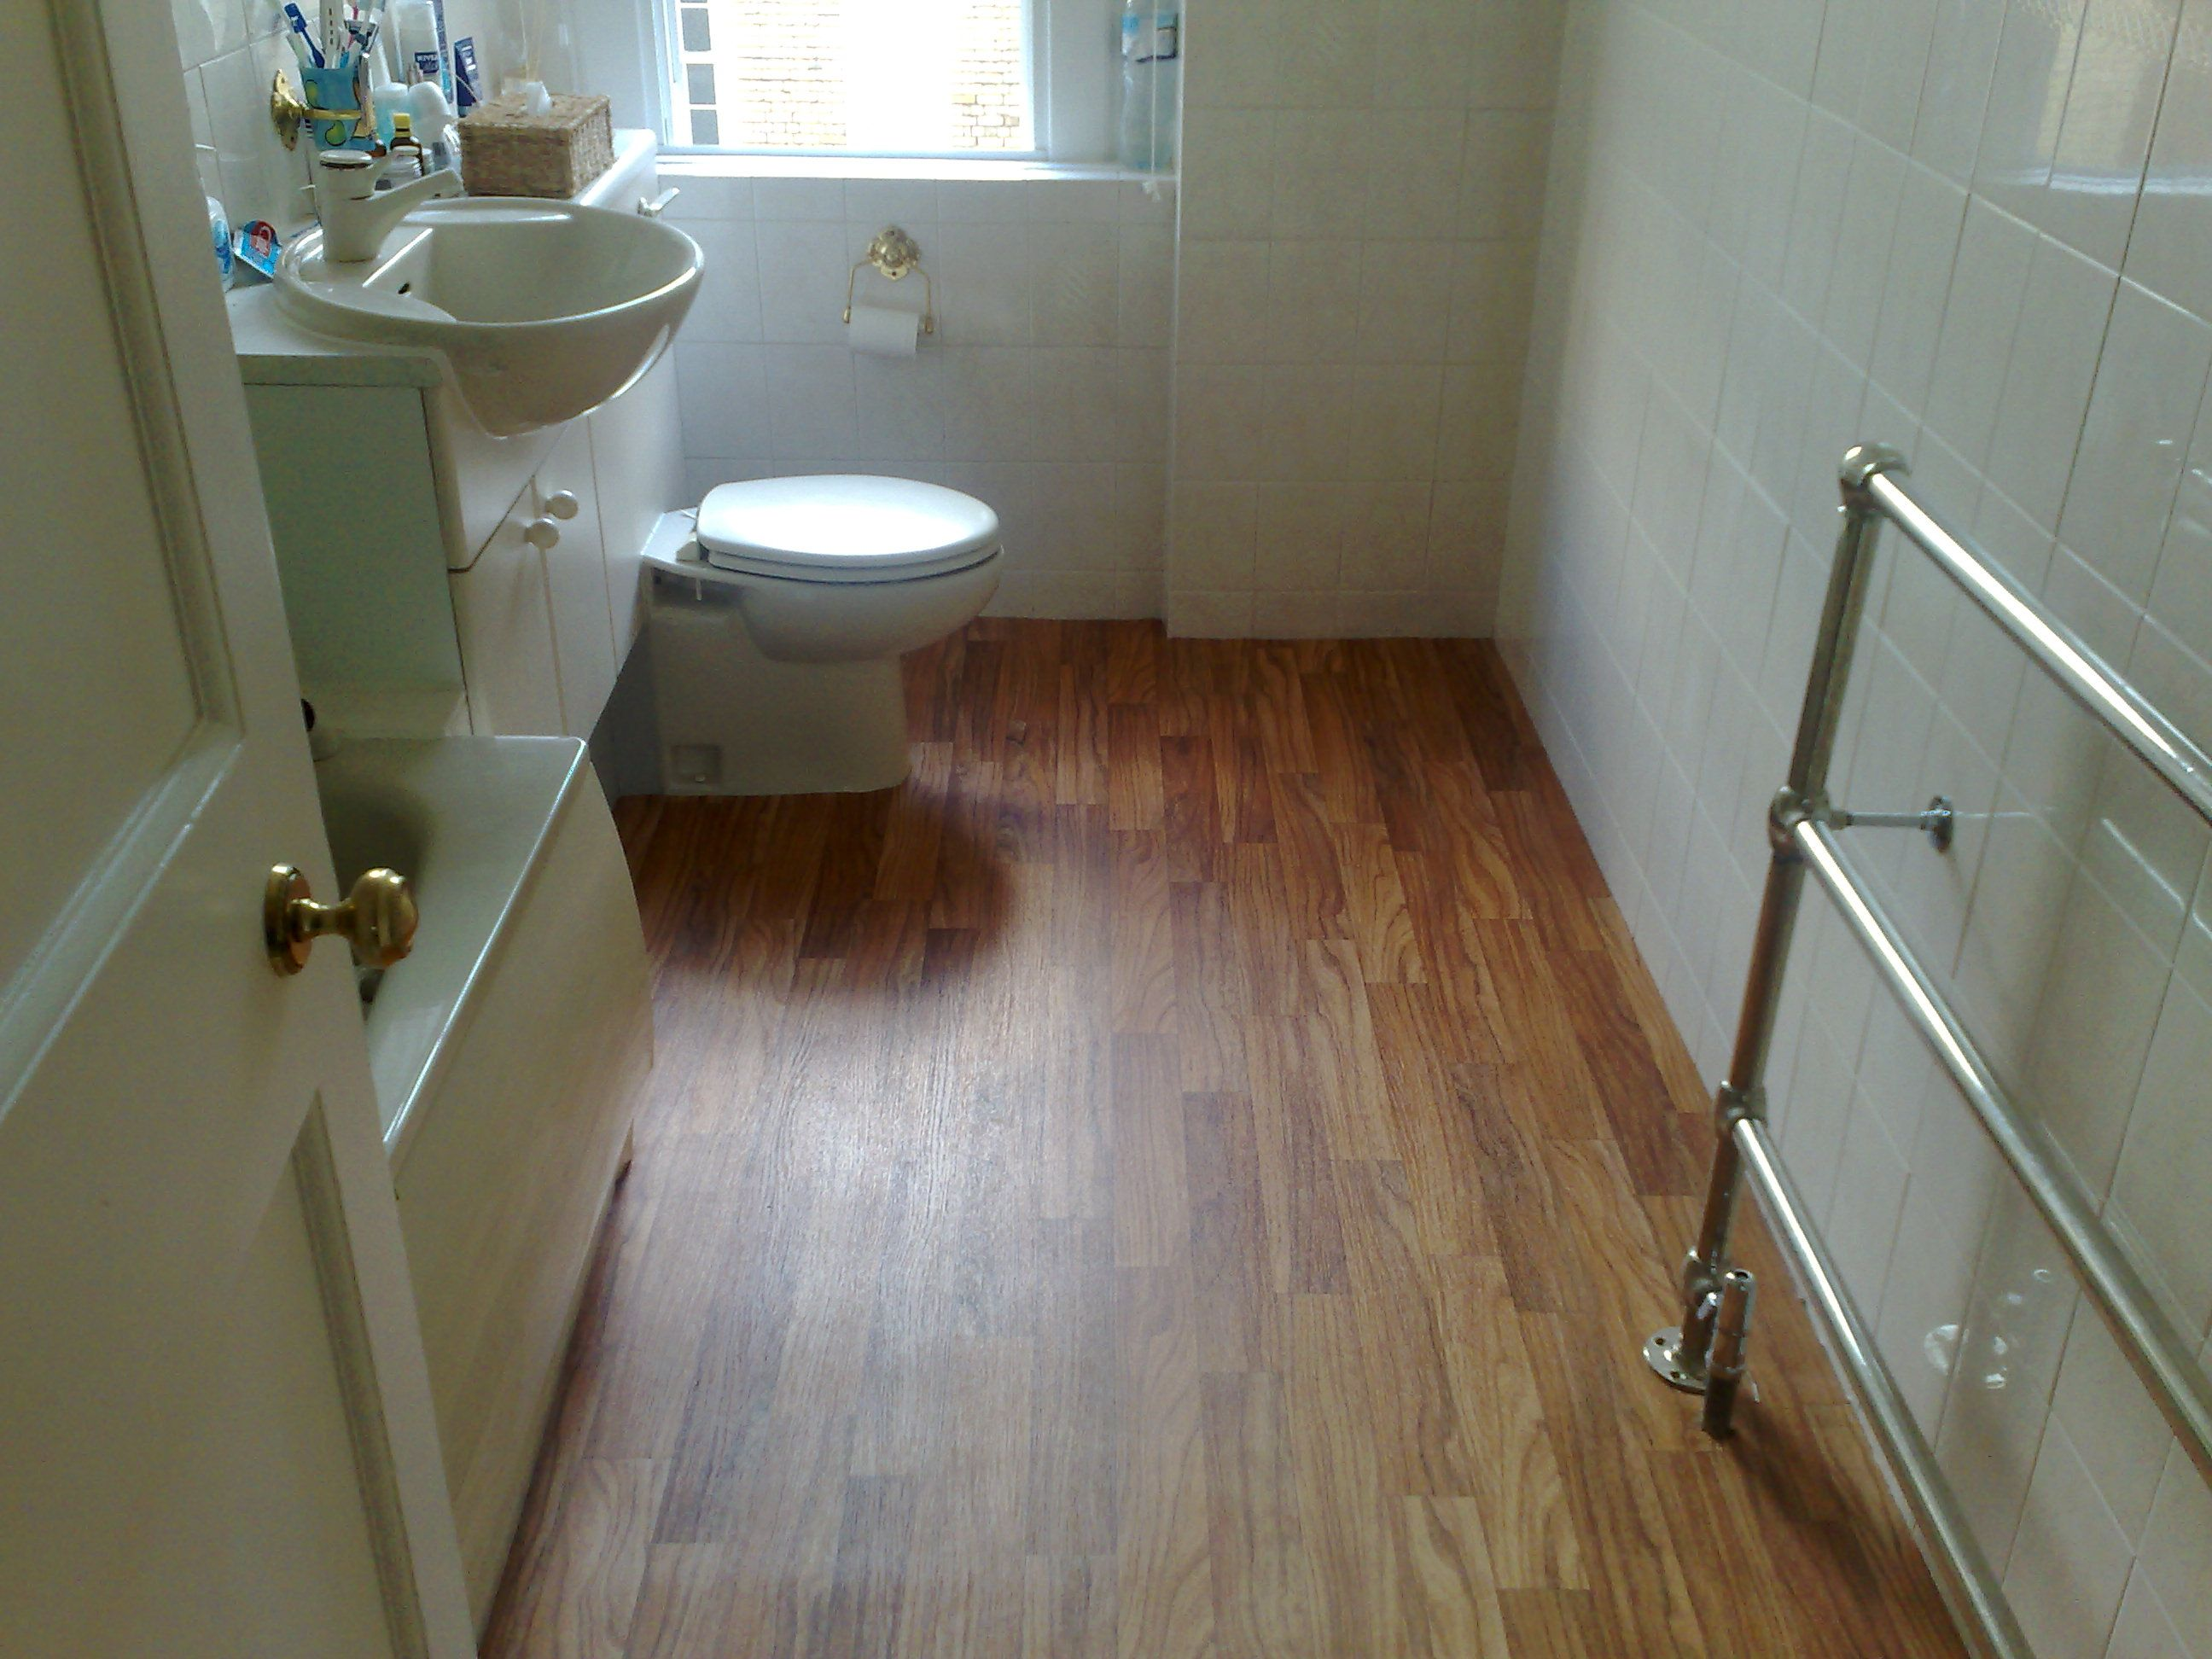 Bathroom Floor Tile | BATHROOM WOODEN FLOORING » Bathroom Design Ideas